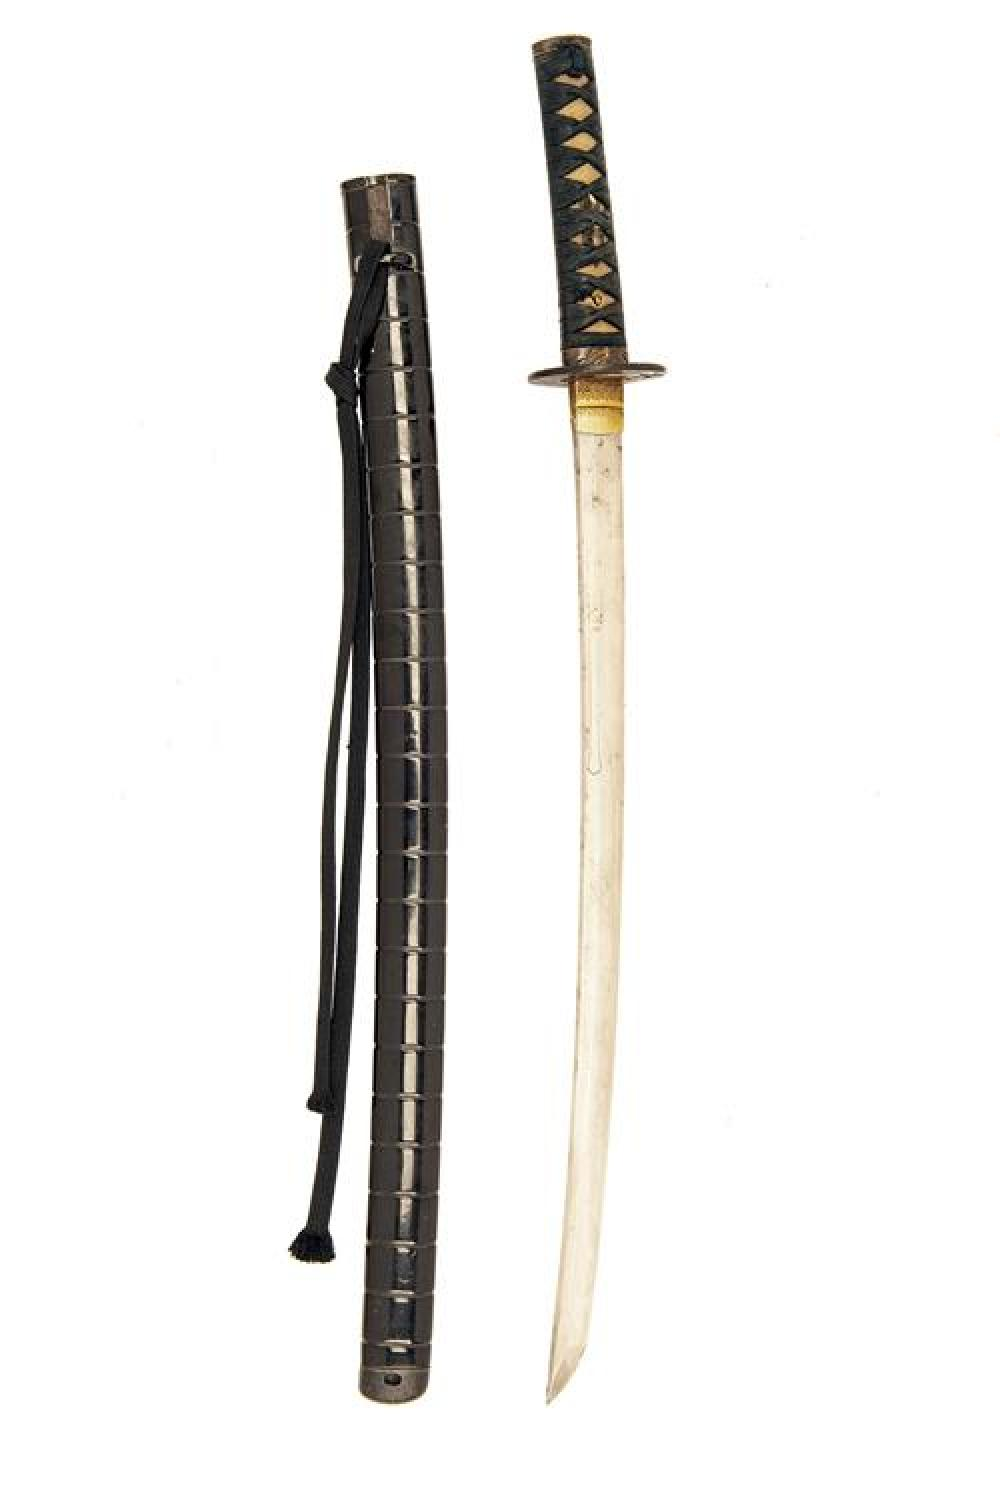 A JAPANESE WAKIZASHI WITH SIGNED BLADE,